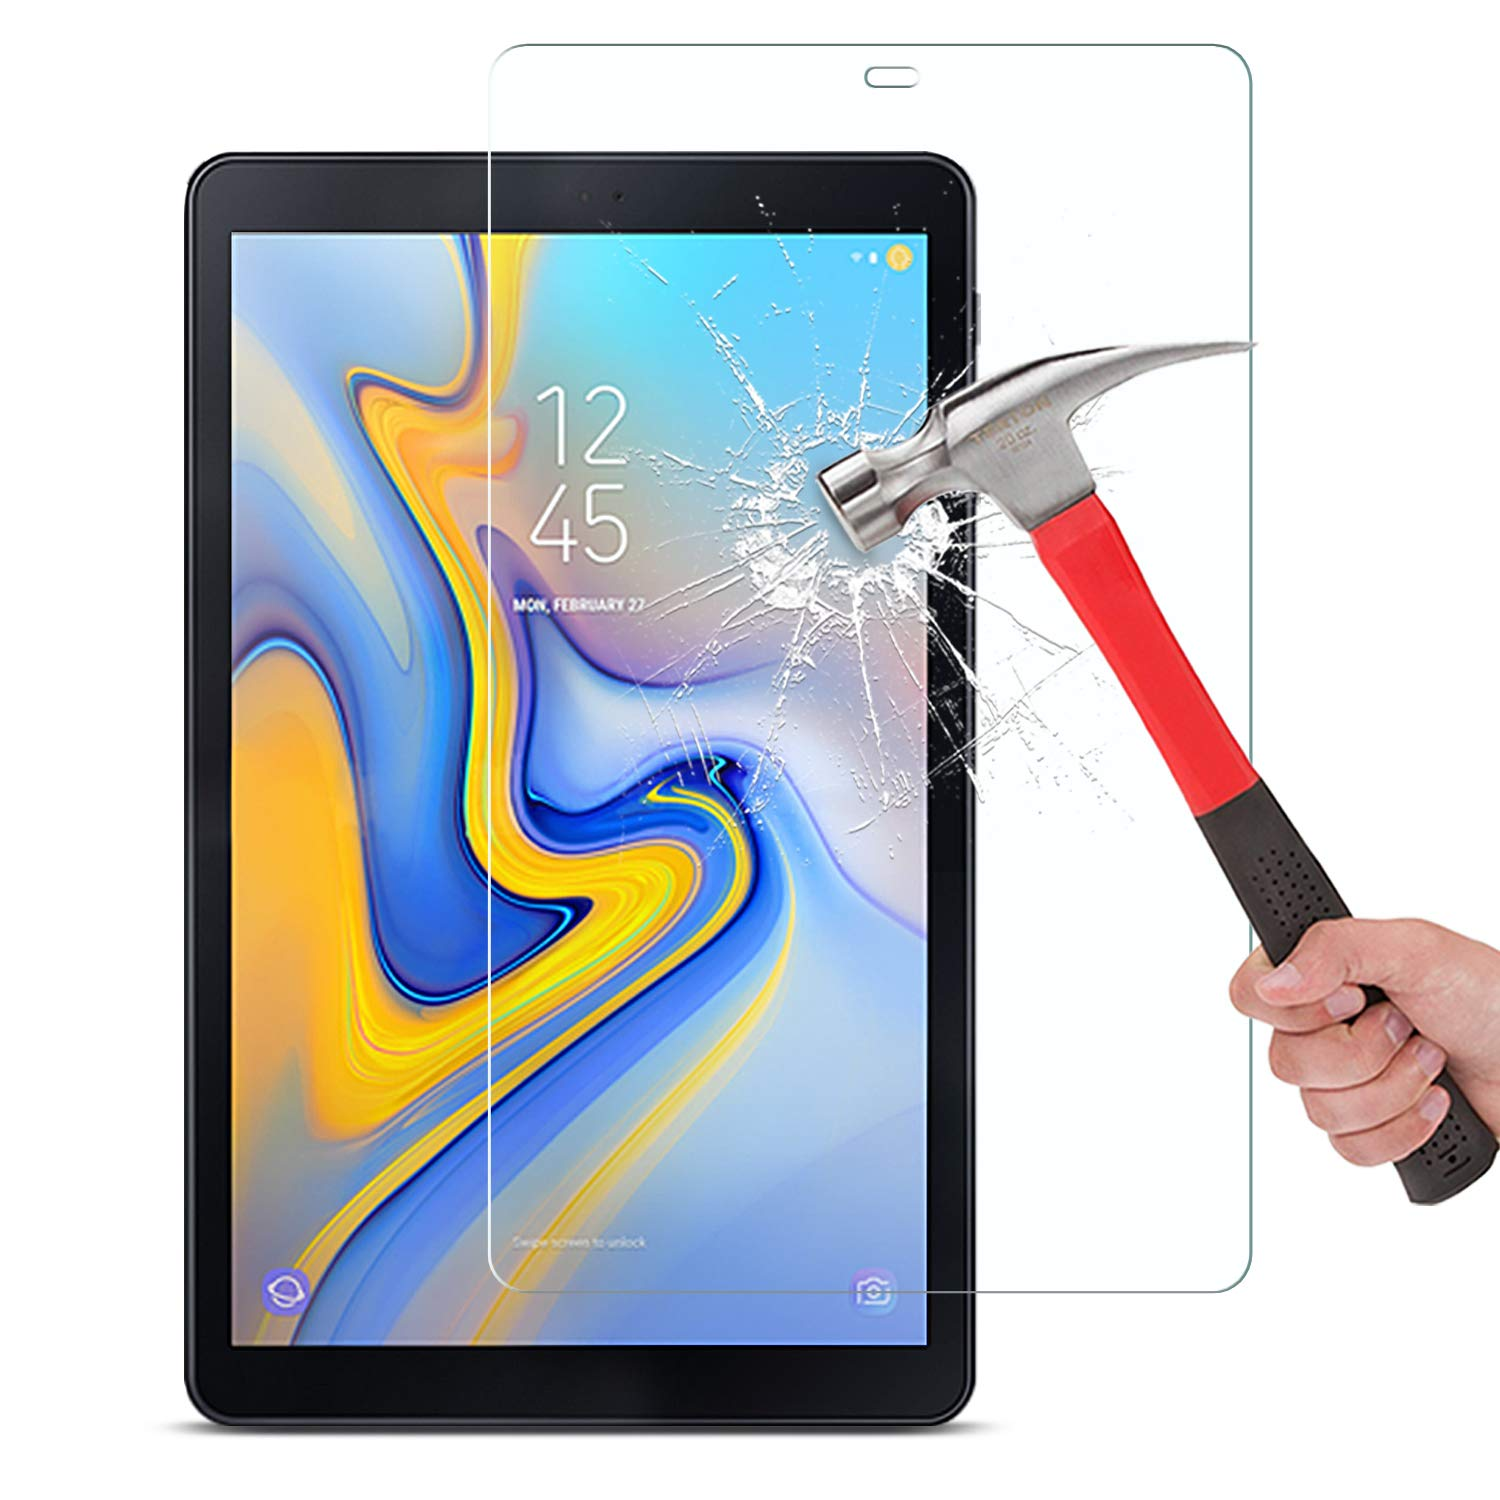 2019 Fashion Clear Soft Ultra Slim Screen Protector Film For Samsung Galaxy Tab S4 10.5 Sm-t830 T835 Tablet Protective Film Skillful Manufacture Tablet Accessories